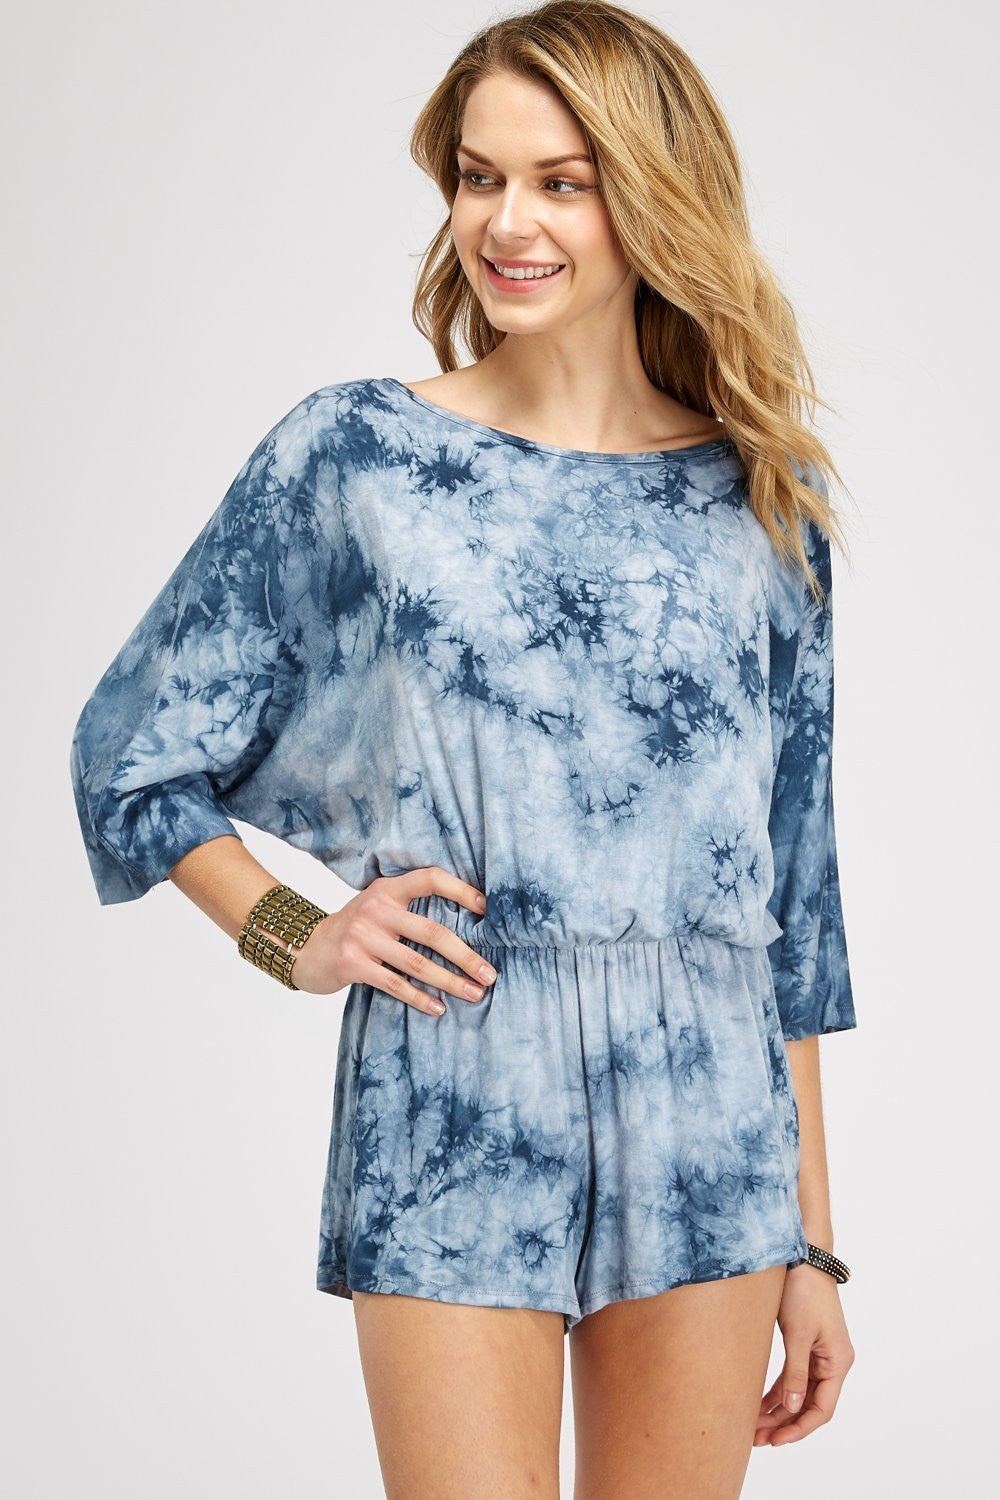 Wholesale Clothing, Online Wholesale Clothing, Women Clothing, Bohemian, Free People, tiedye, specialty wash, wholesale seller, wholesale women clothing shop, gypsy look, USA made, URBAN X APPAREL-ROMPERS-URP9902B, fashiontrend2019